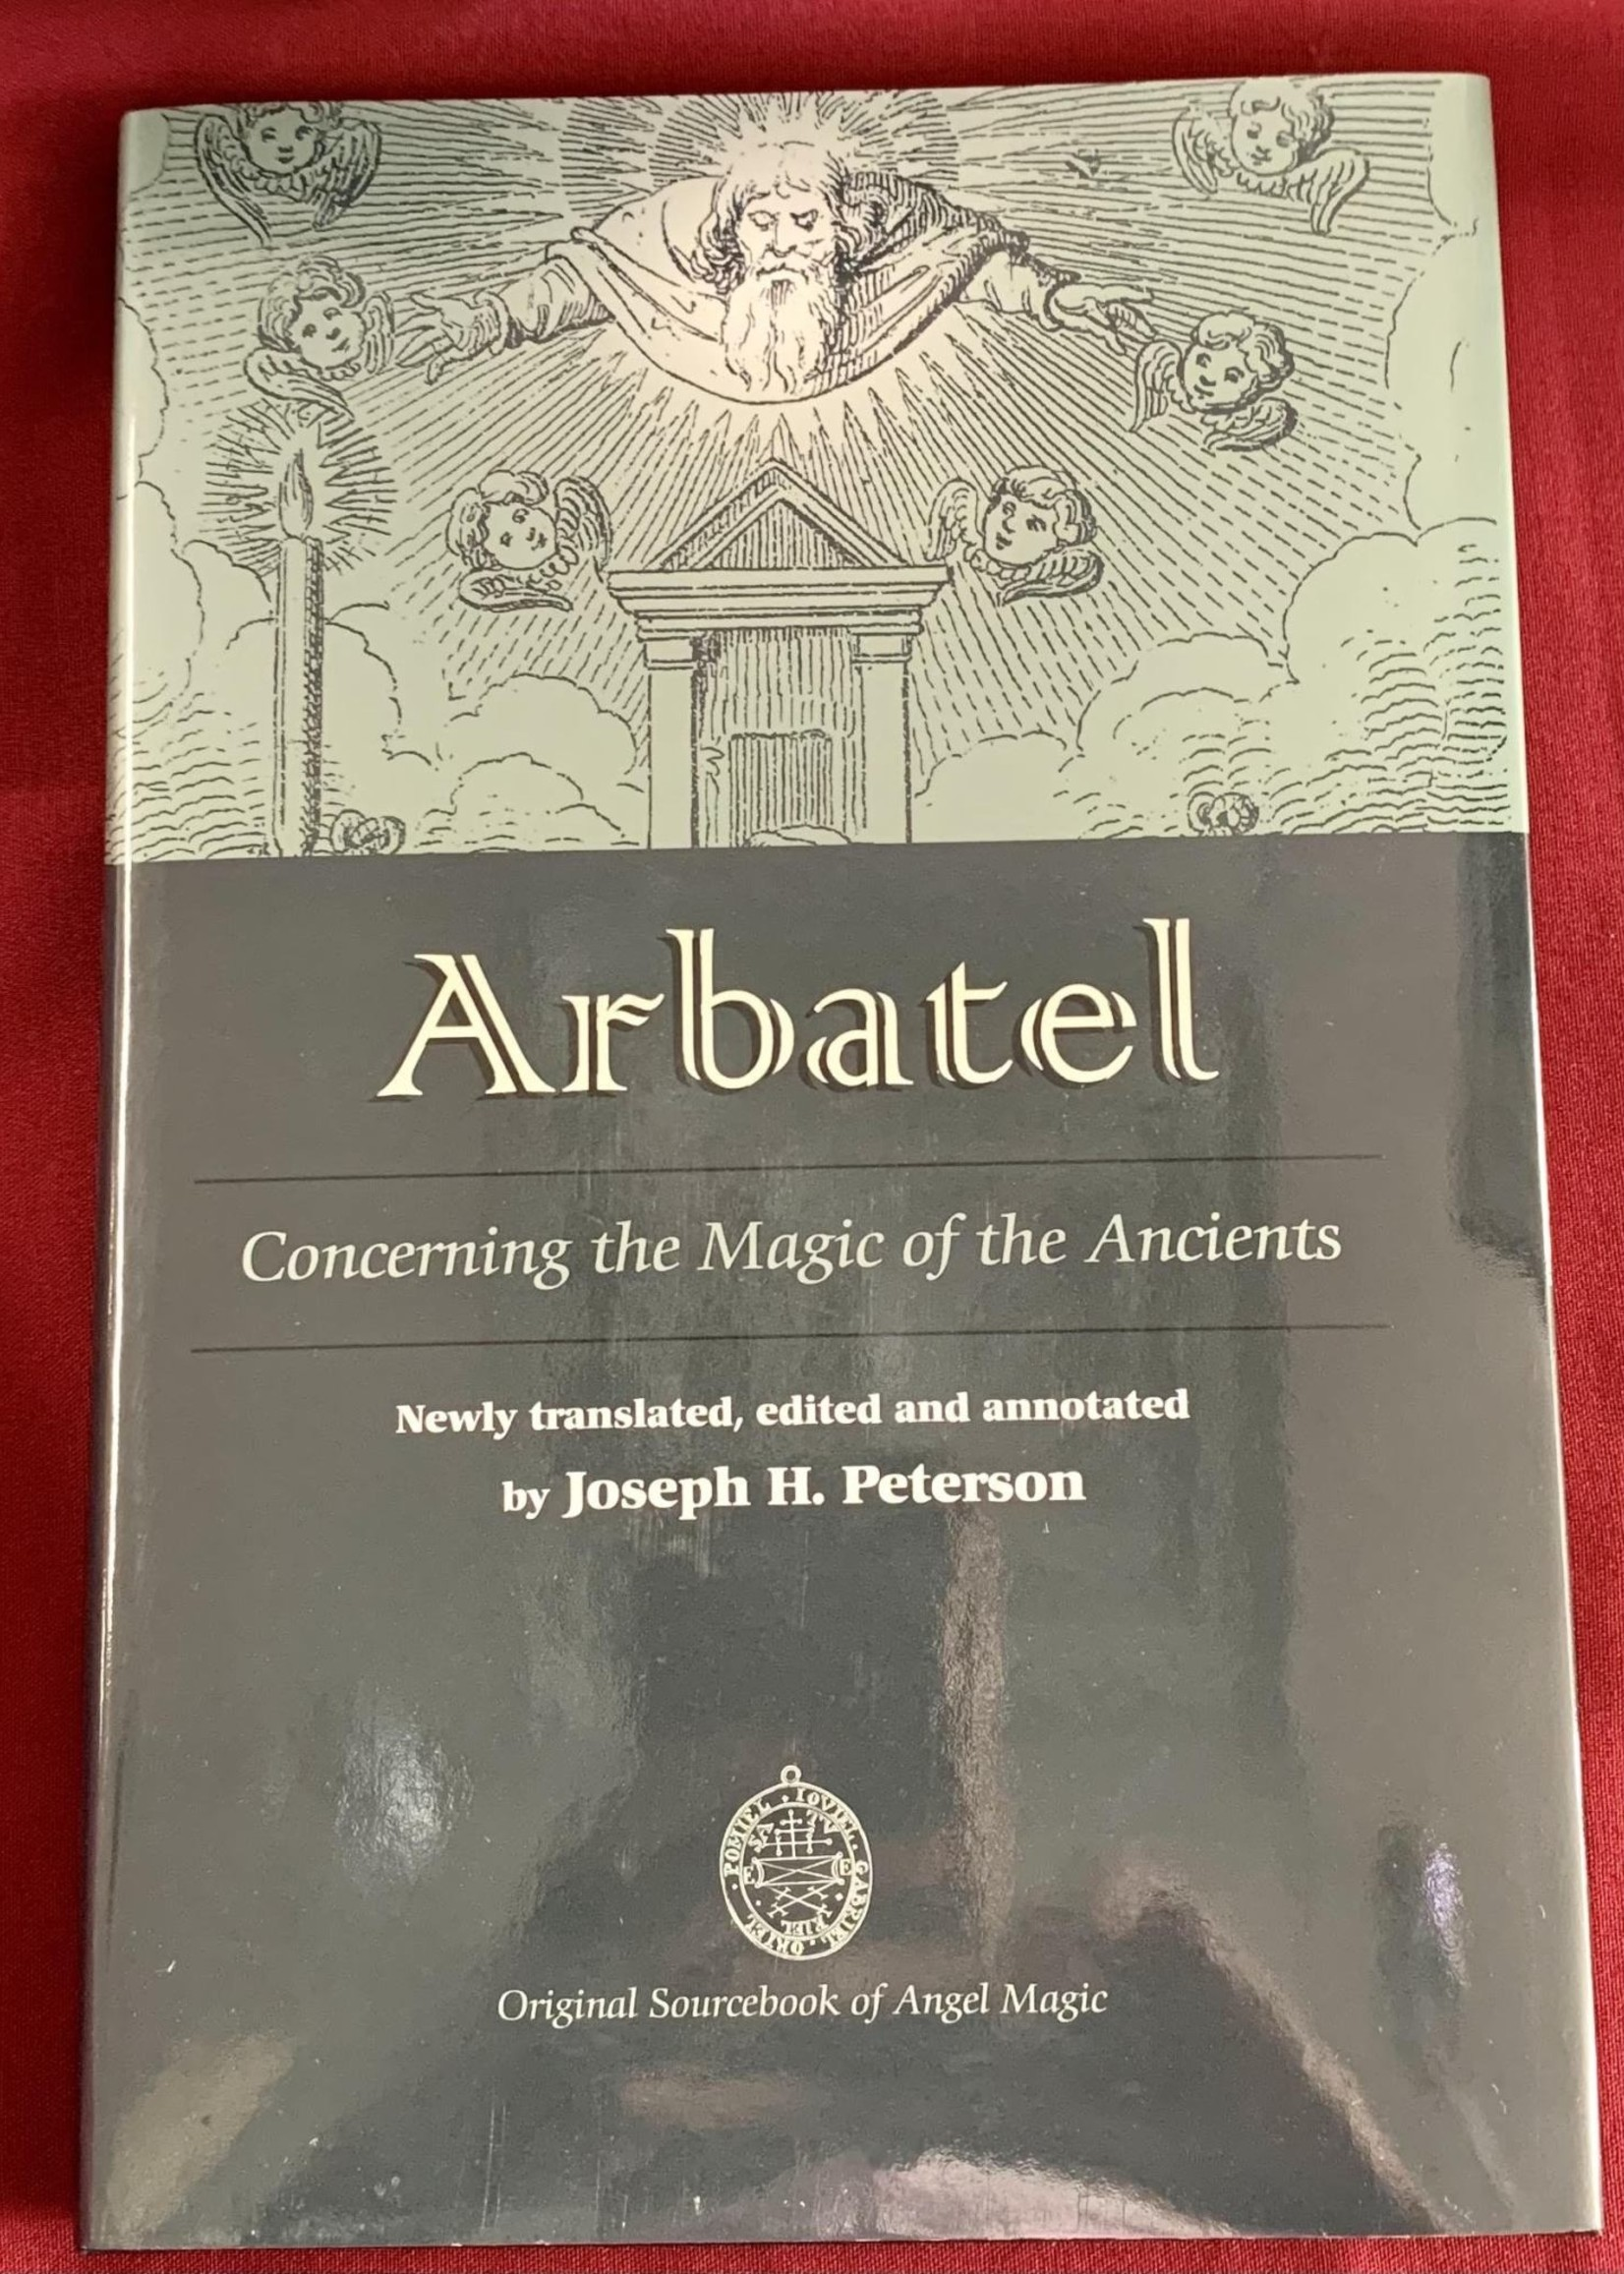 Arbatel Concerning the Magic of the Ancients Edited, Translated, and Annotated by - Joseph H. Peterson